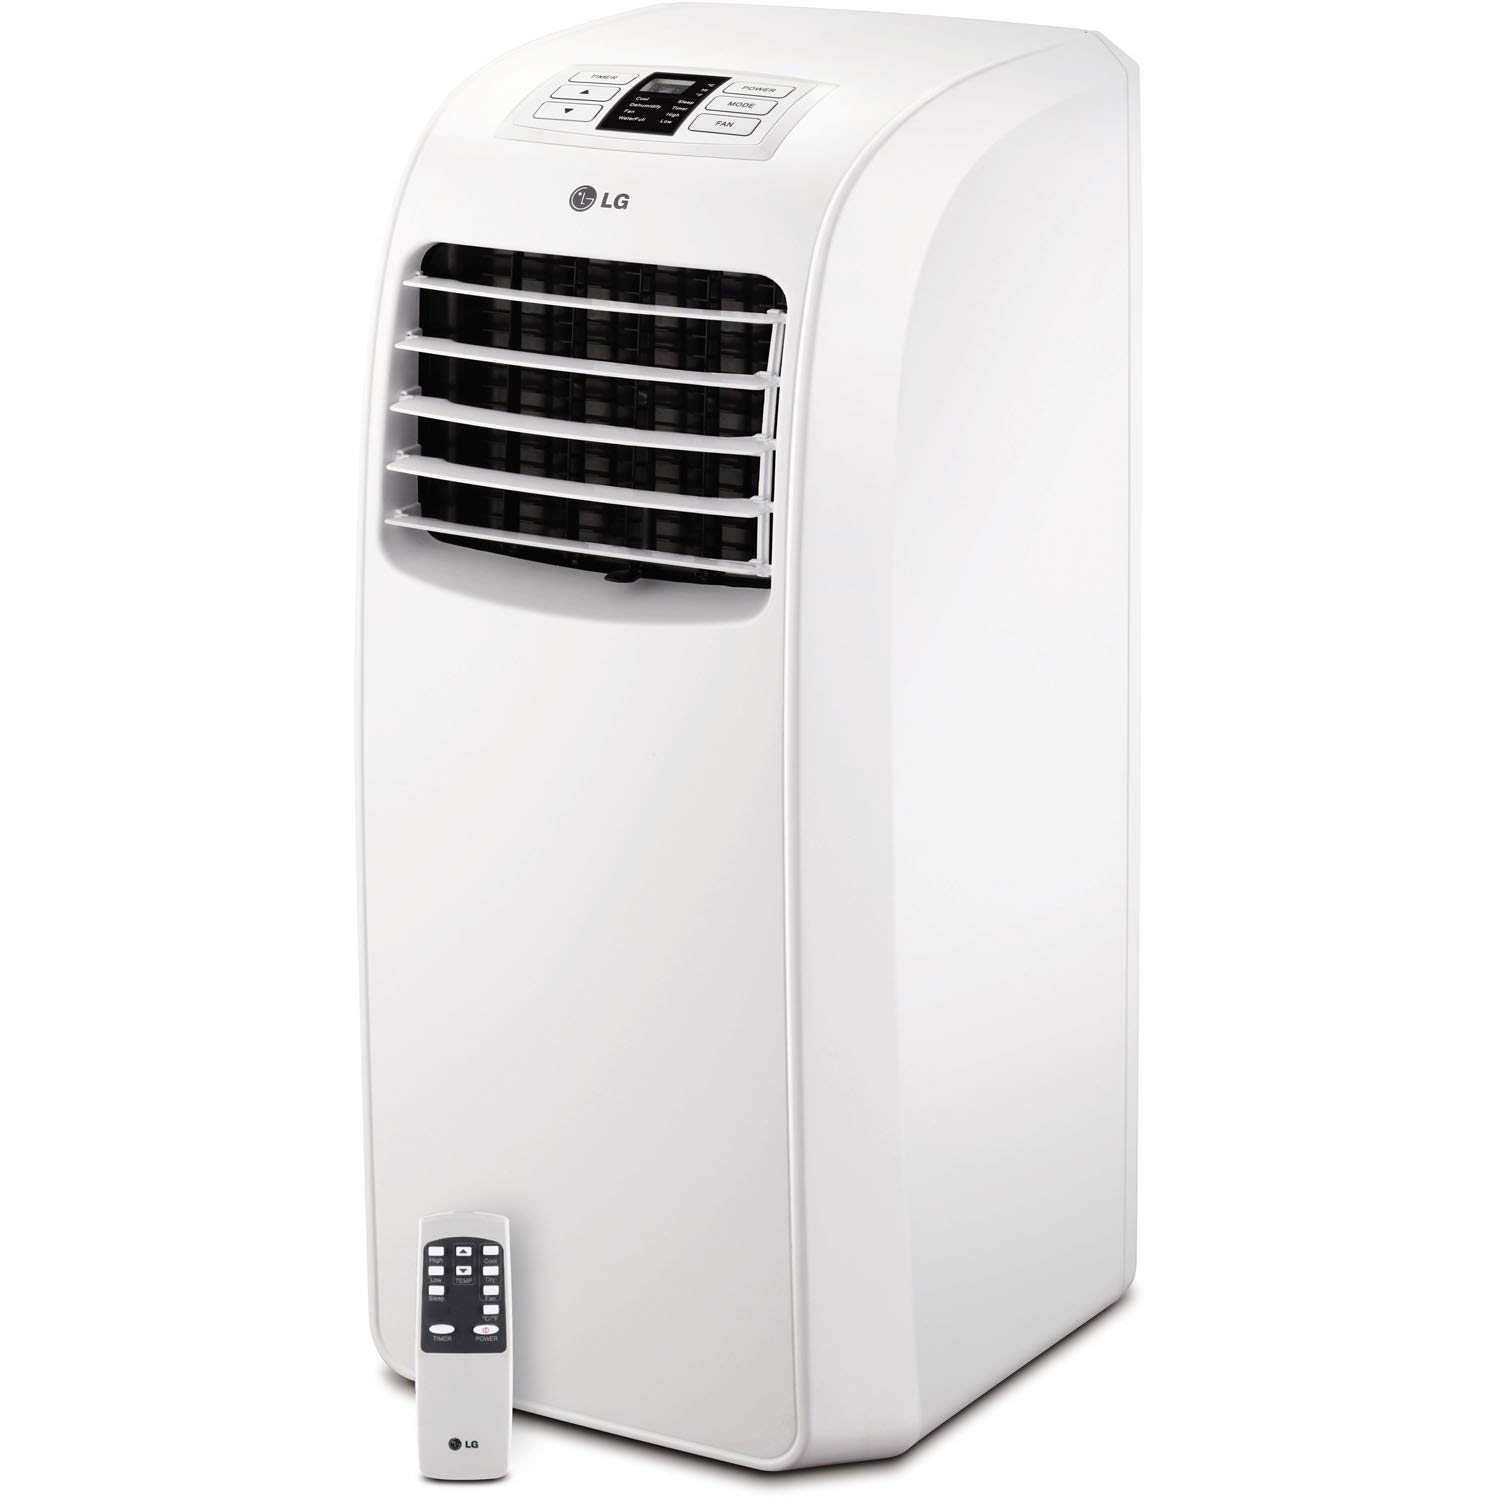 LG Electronics LP0814WNR Portable Air Conditioner, 8,000 BTU